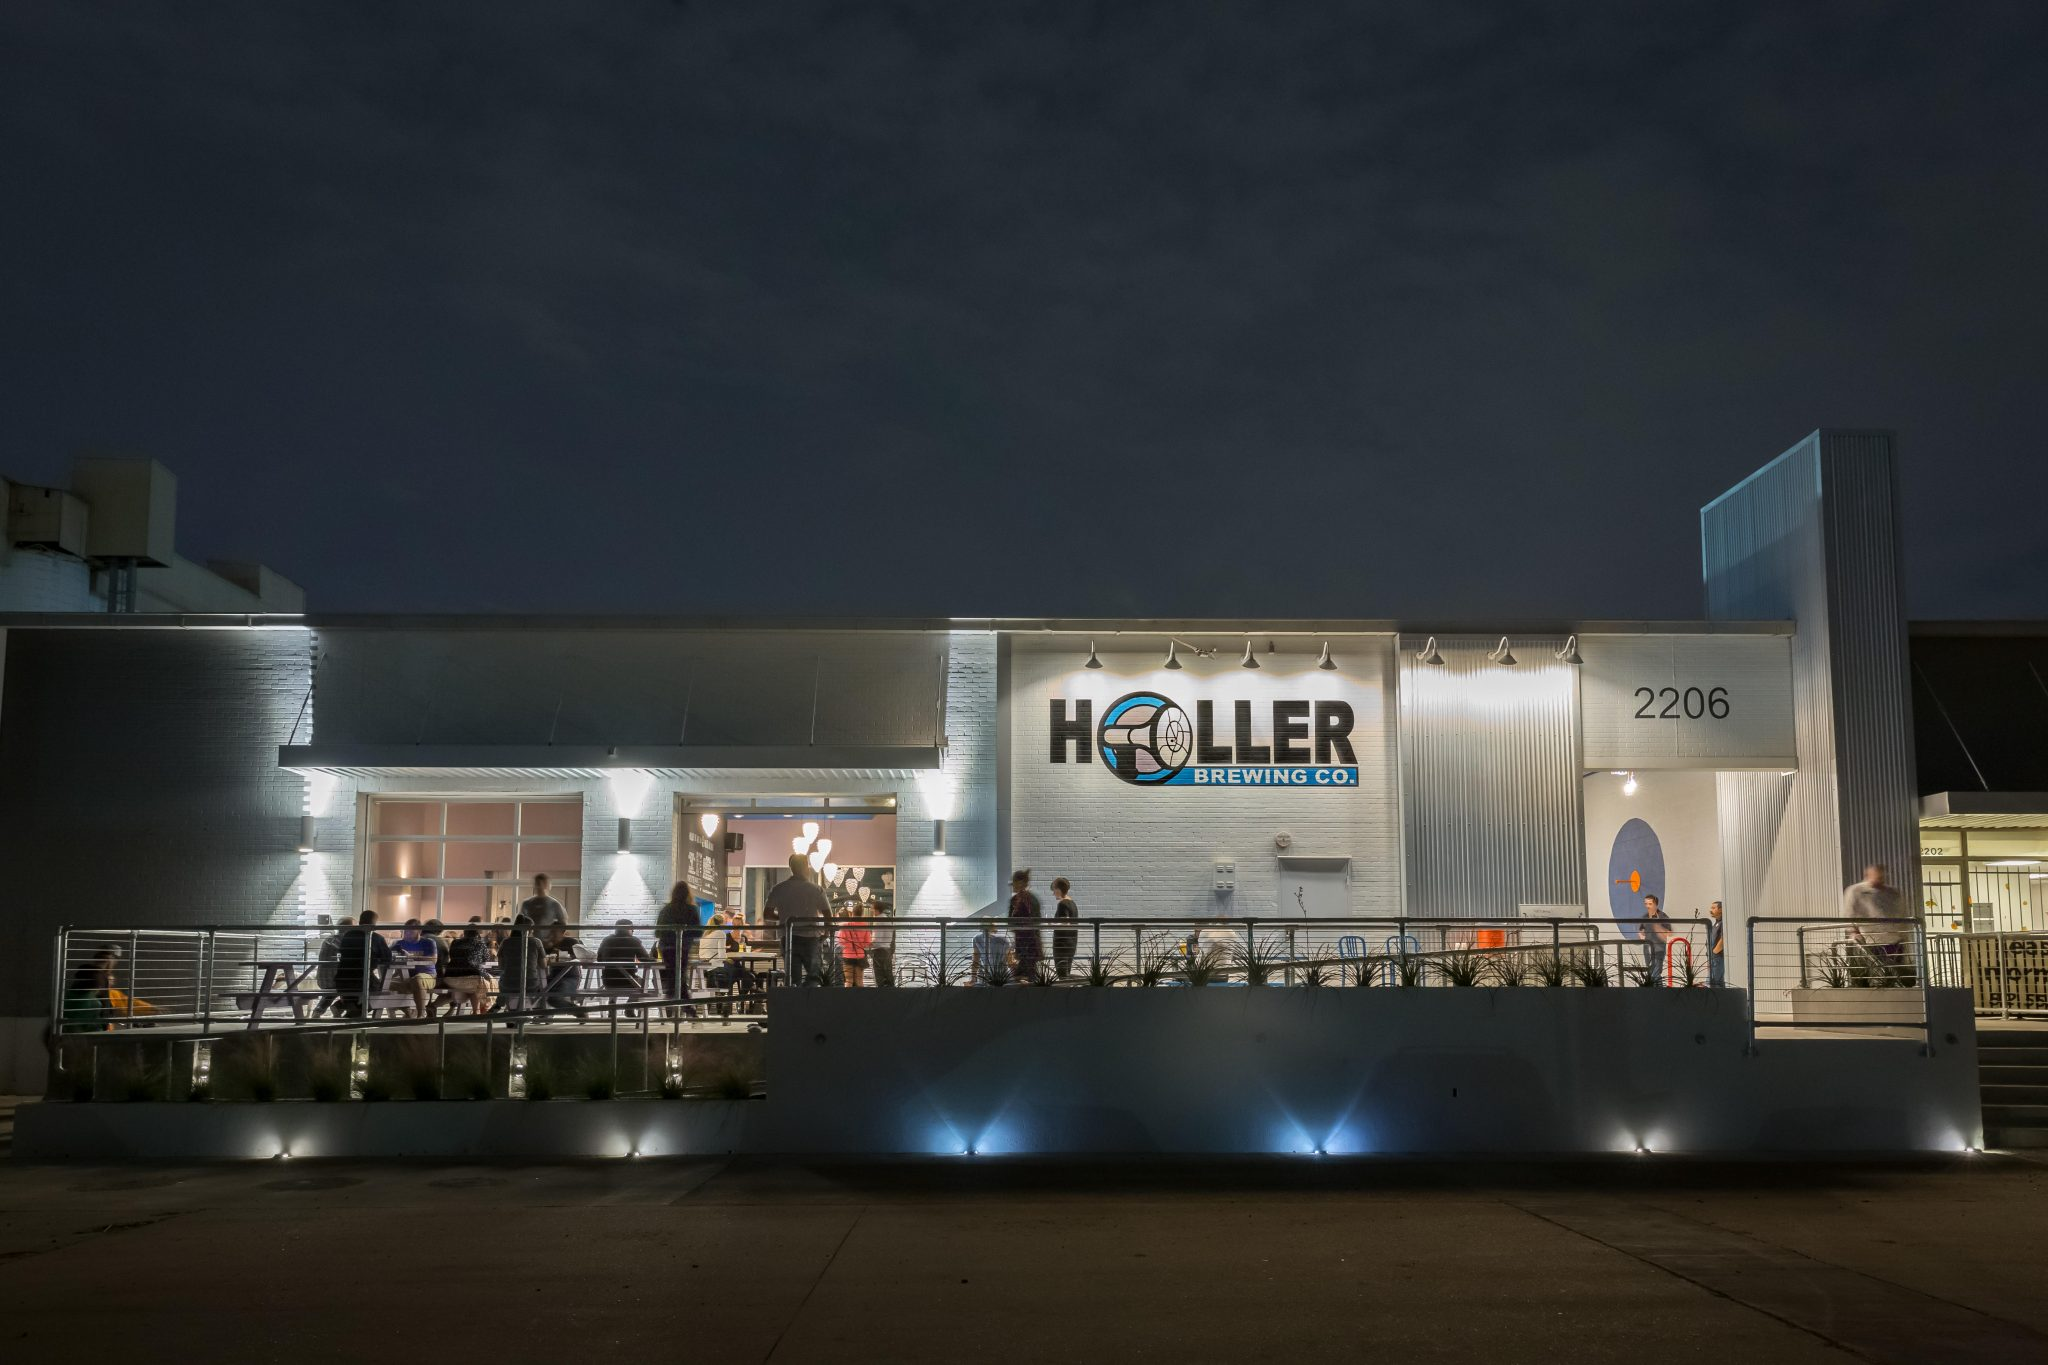 Holler Brewing Co.